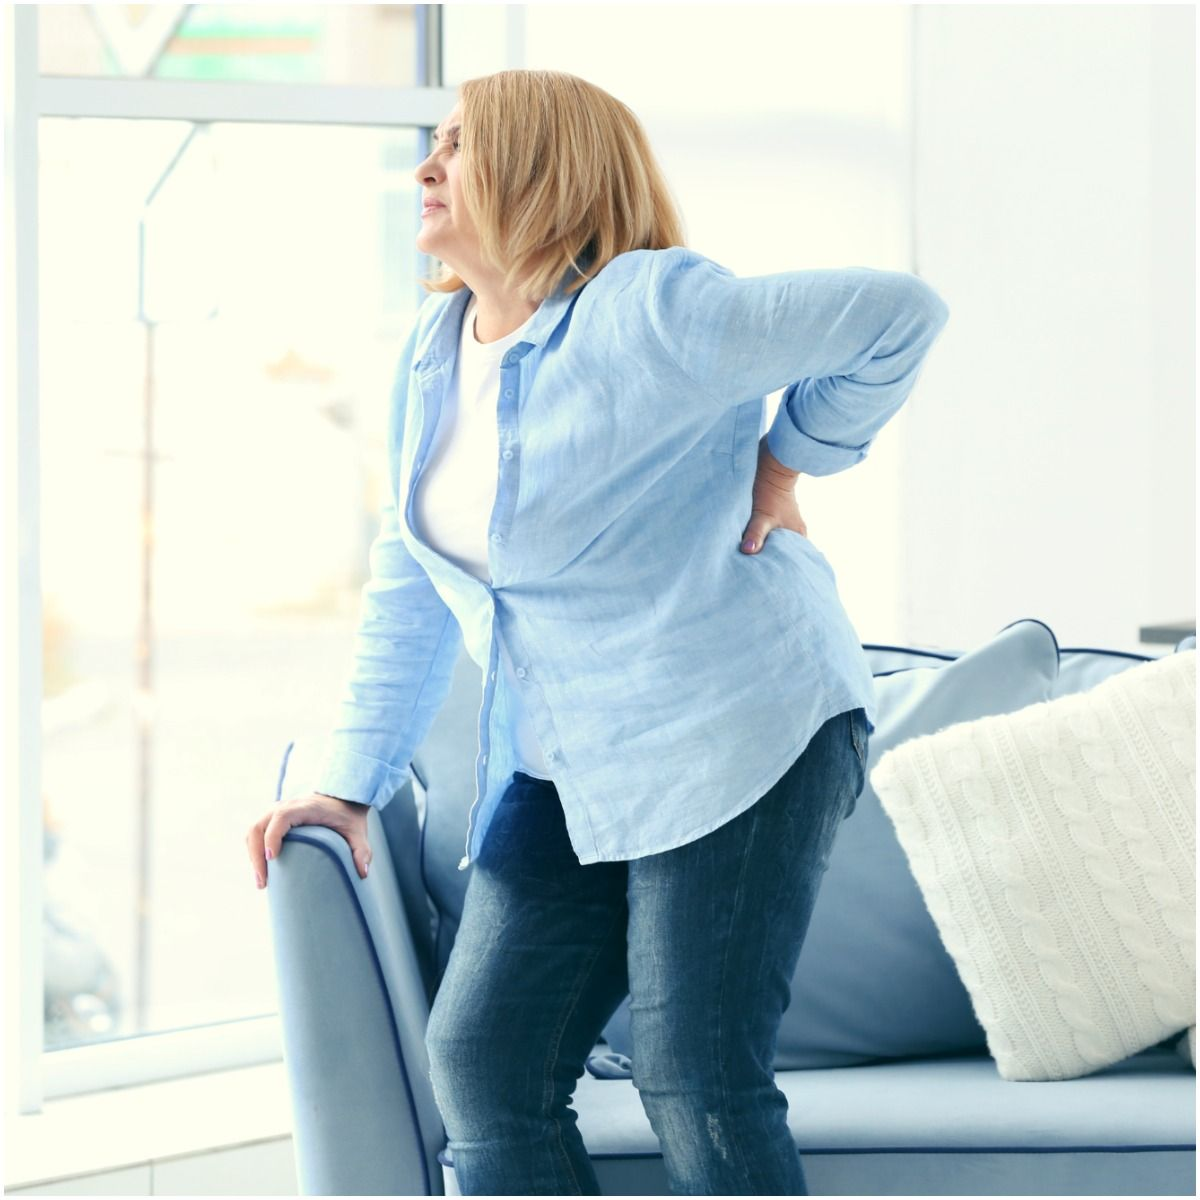 Spiritual Meaning of middle Back Pain